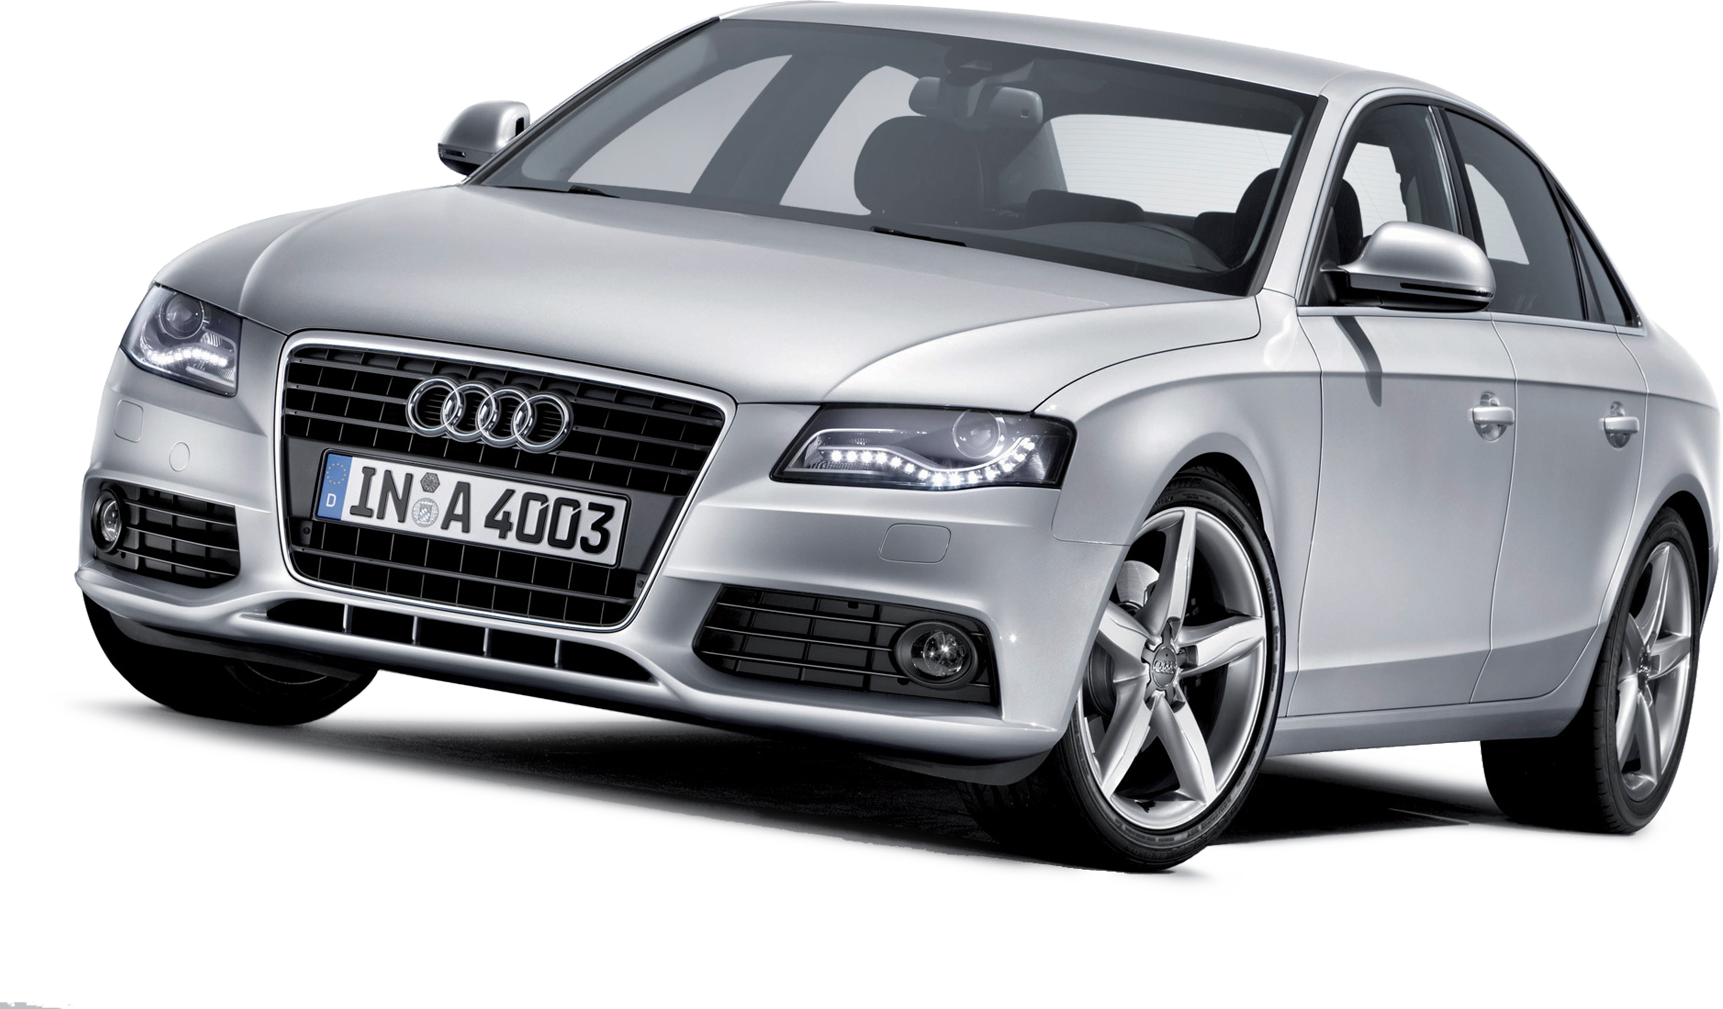 Library car clipart clip royalty free stock Audi PNG Car Images, free transparent audi clipart images - Free ... clip royalty free stock